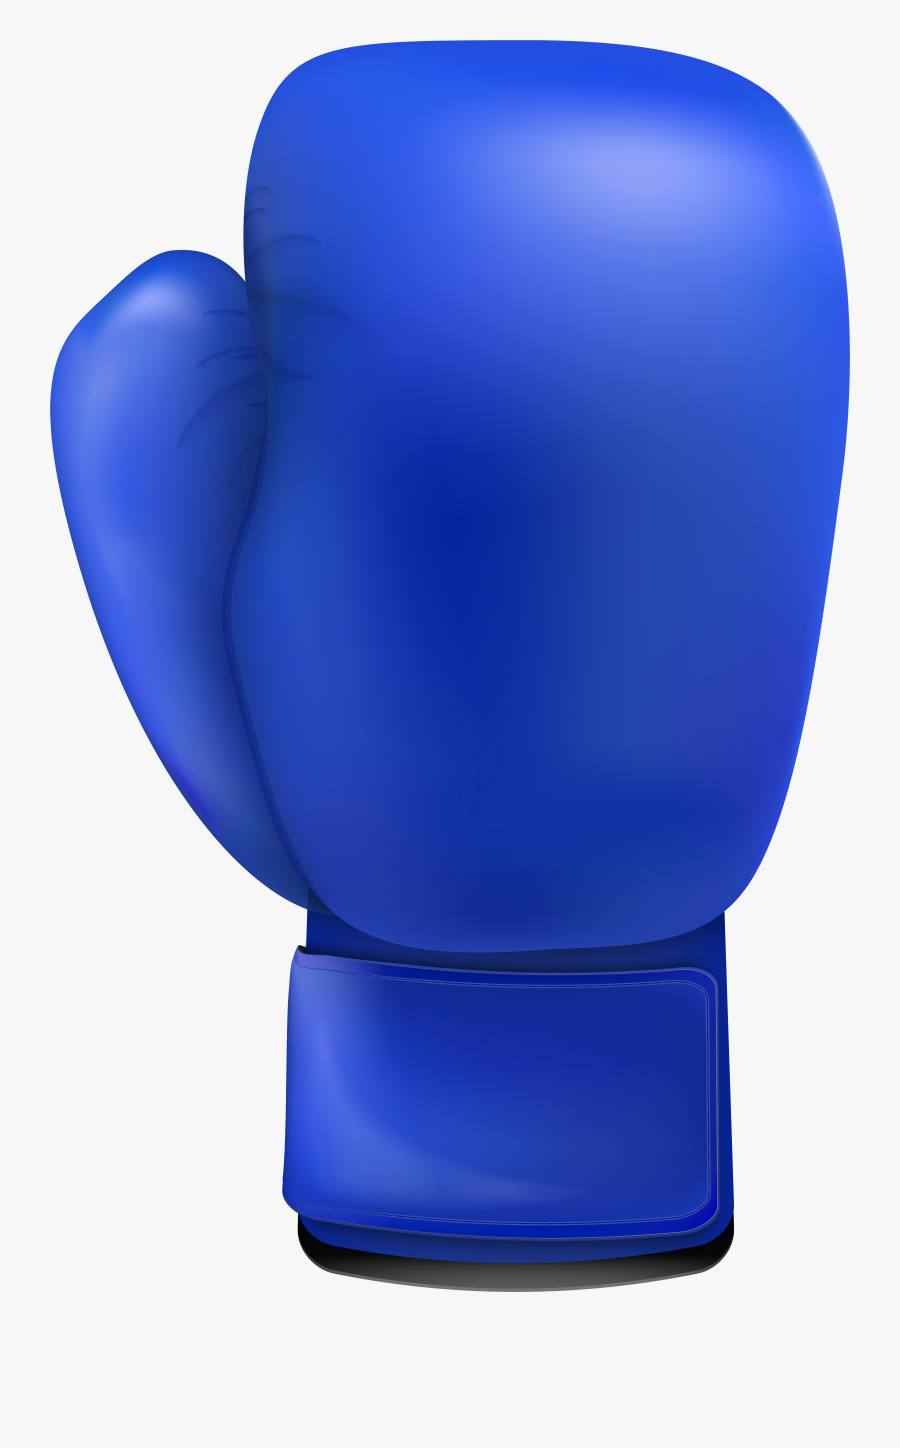 Boxing Gloves - In The Style Of Tattoos. Emblem With Boxing Gloves..  Royalty Free Cliparts, Vectors, And Stock Illustration. Image 63744933.